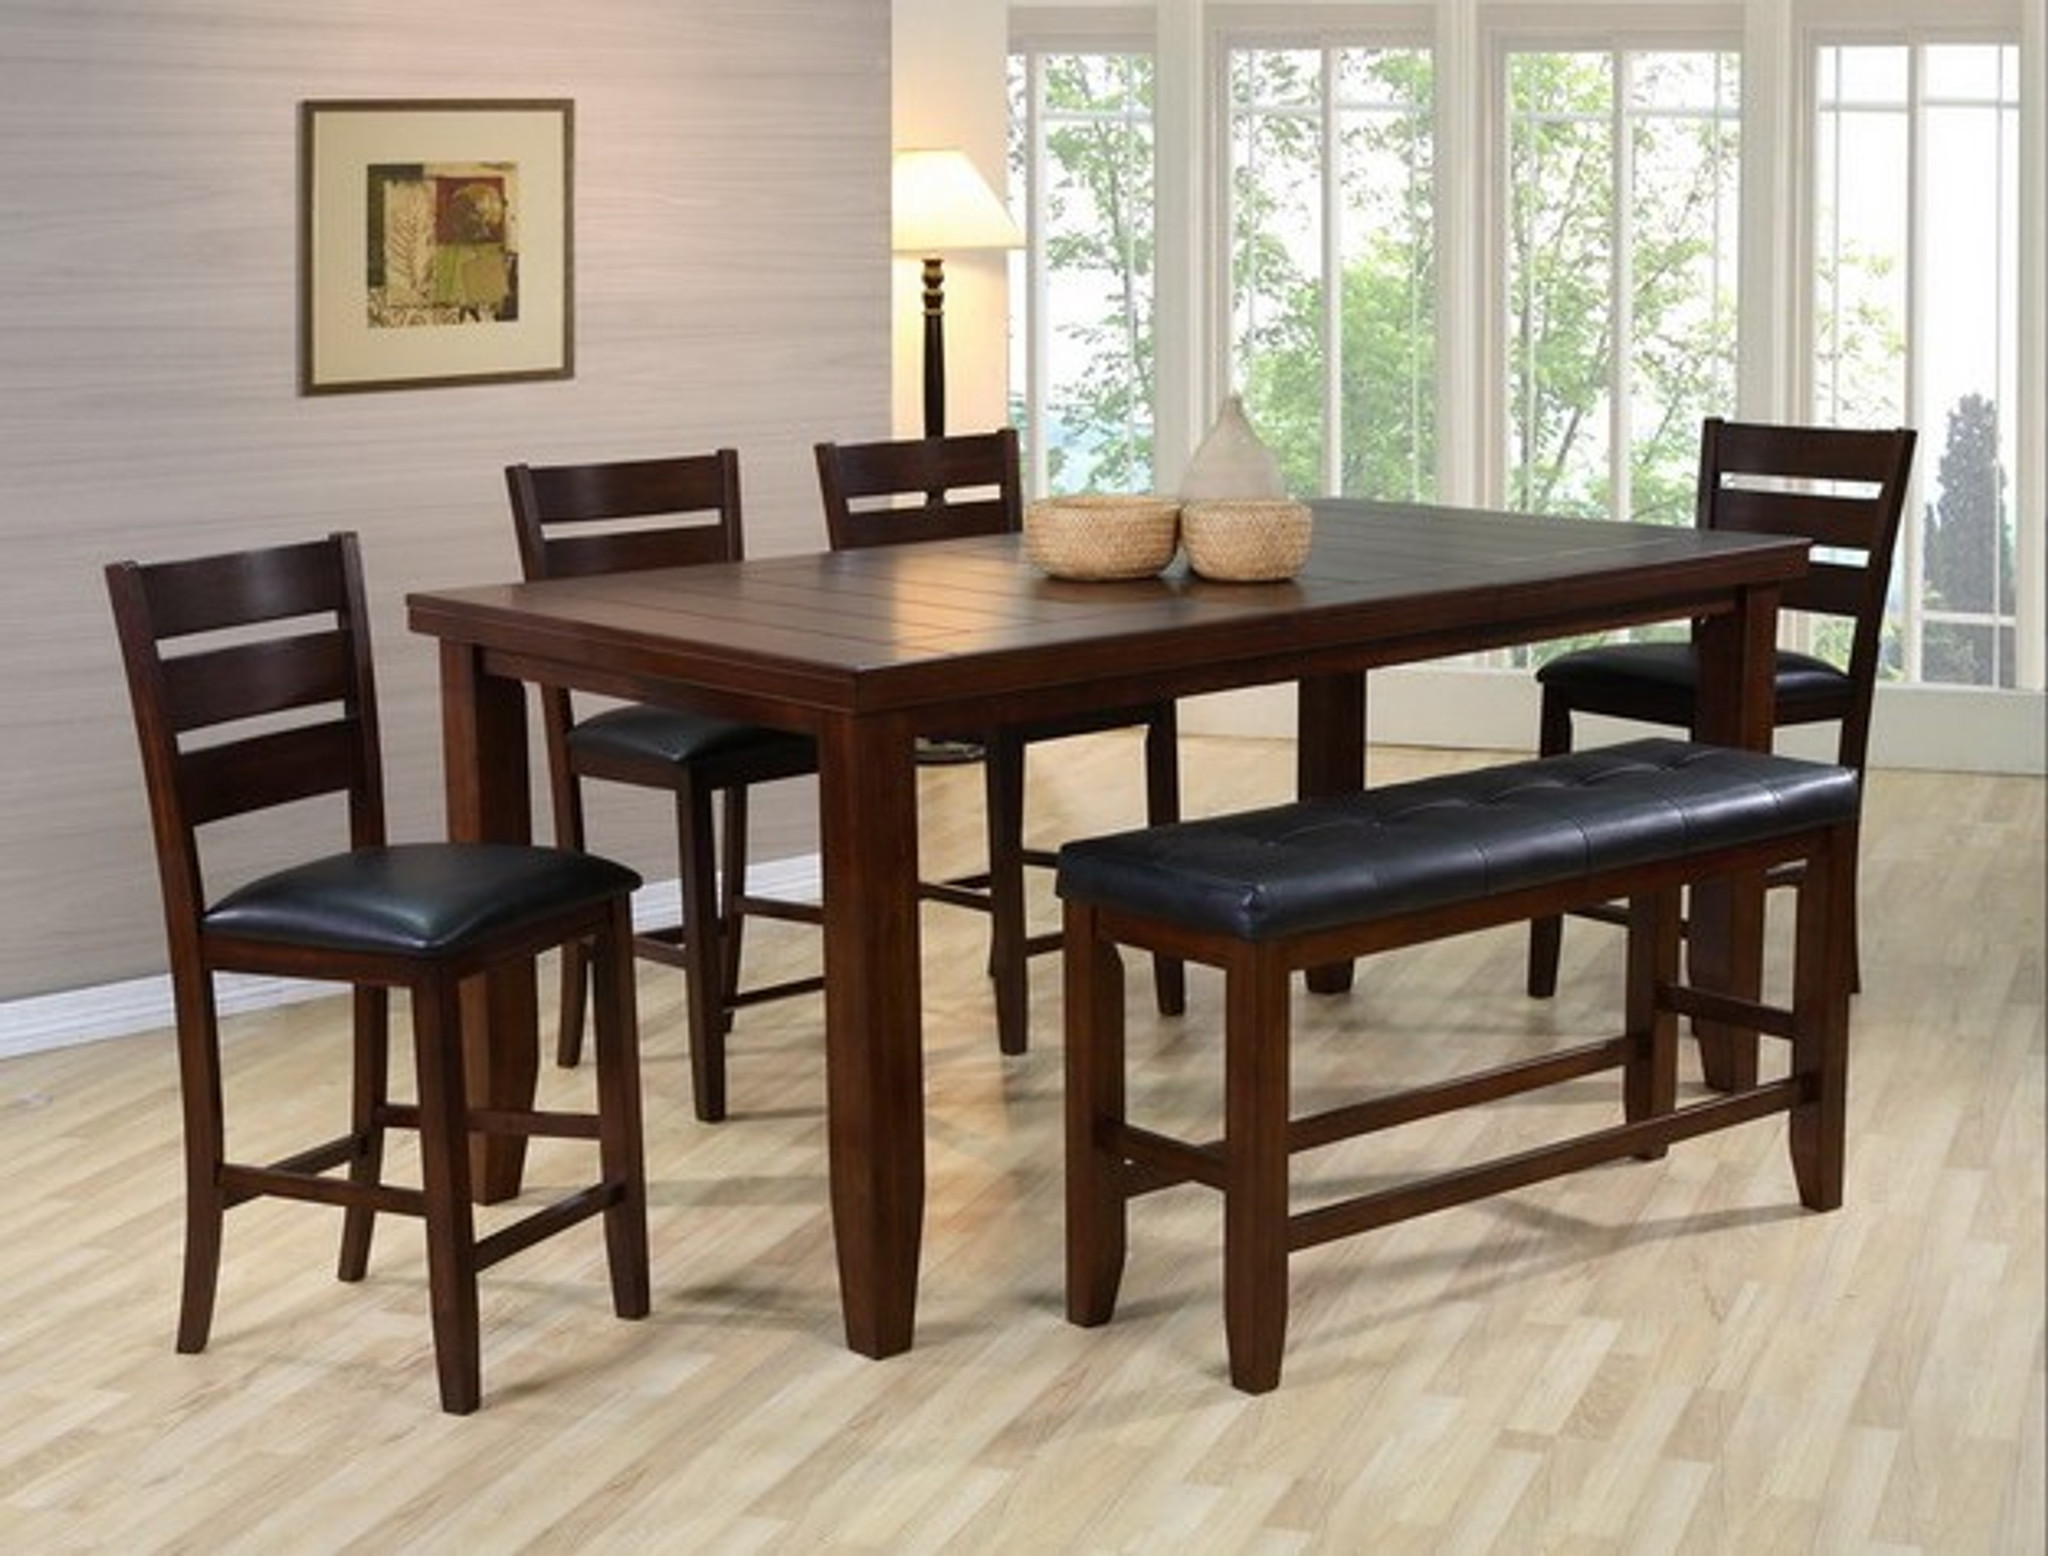 Enjoyable Bardstown Counter Height Dining Table Top 5 Piece Set W Bench Onthecornerstone Fun Painted Chair Ideas Images Onthecornerstoneorg